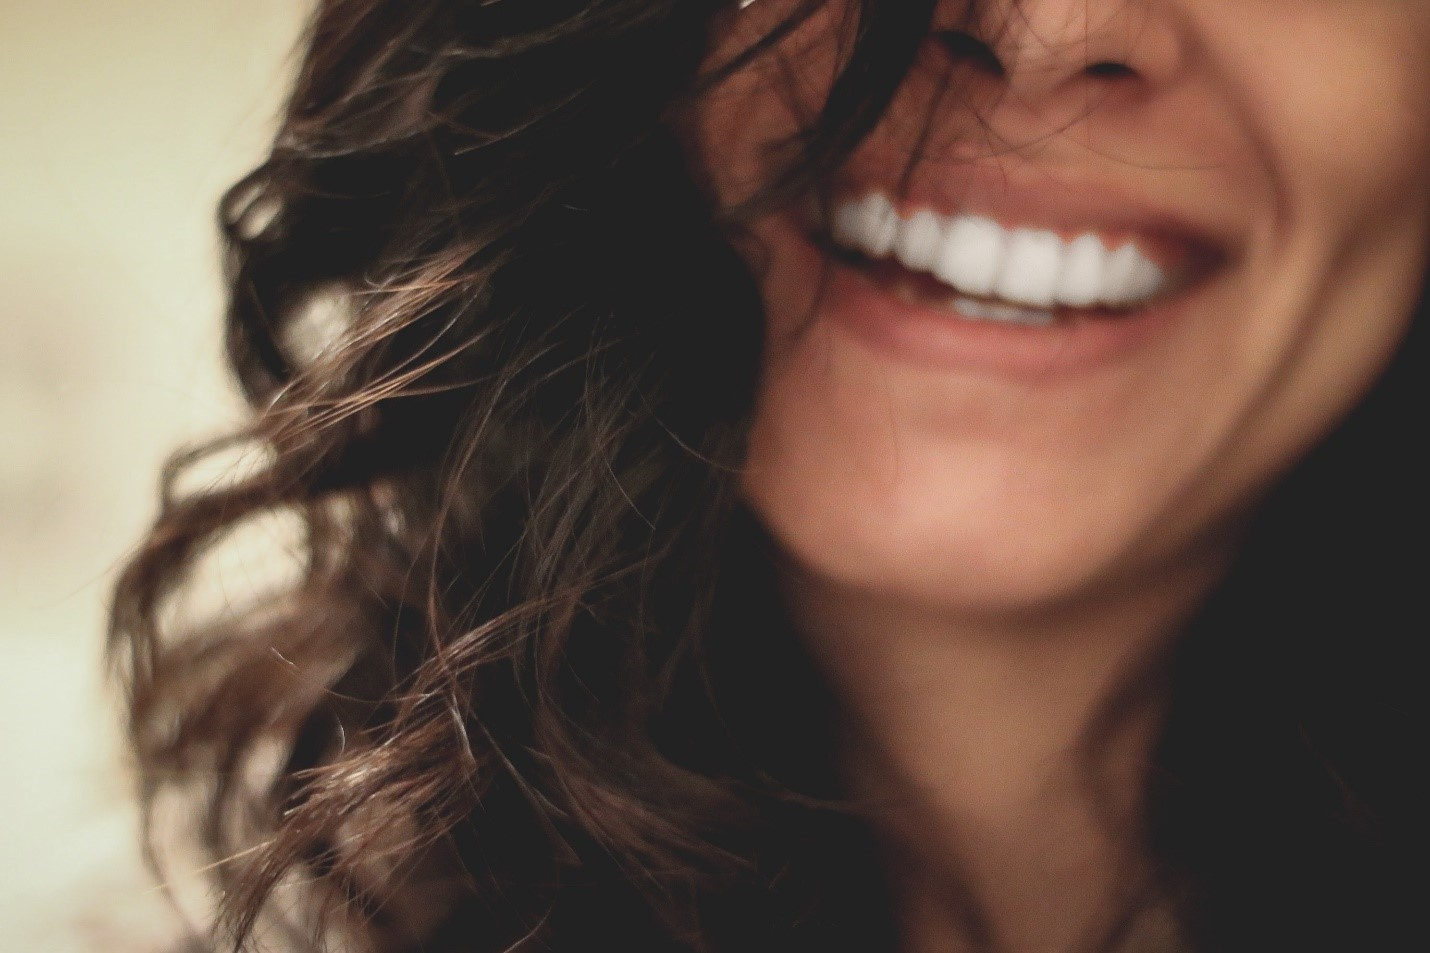 A woman smiling and showing white teeth